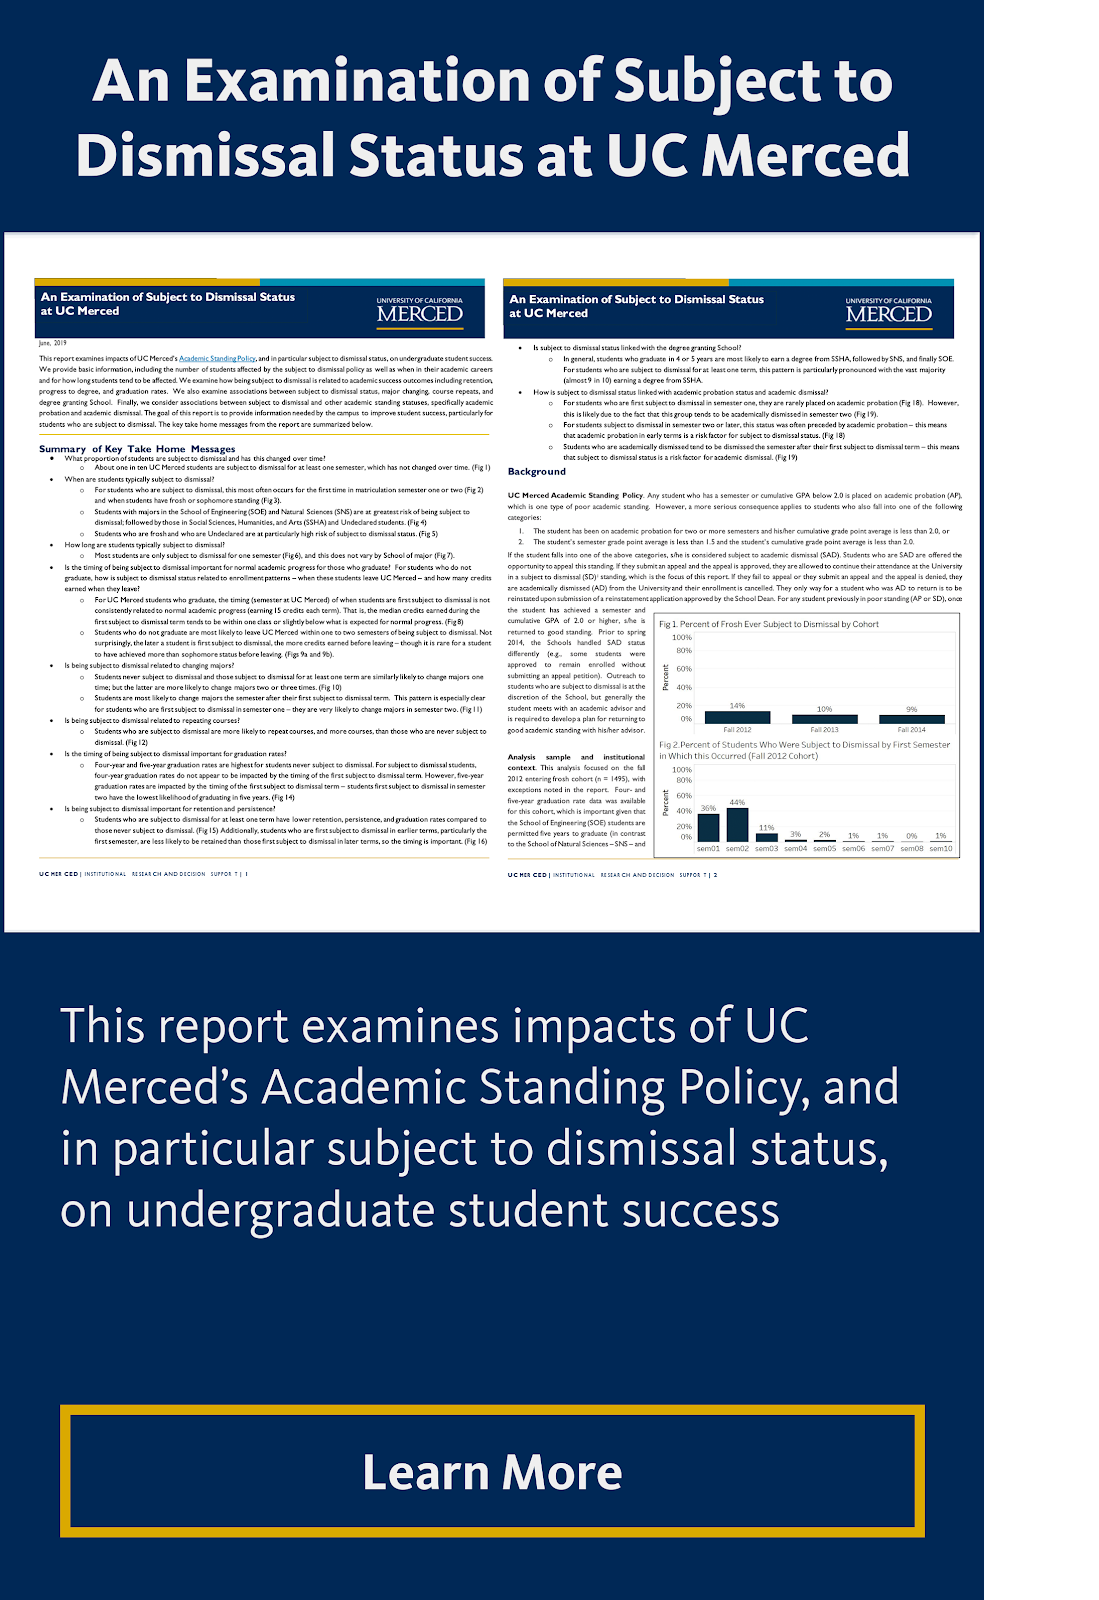 An Examination of Subject to Dismissal Status at UC Merced